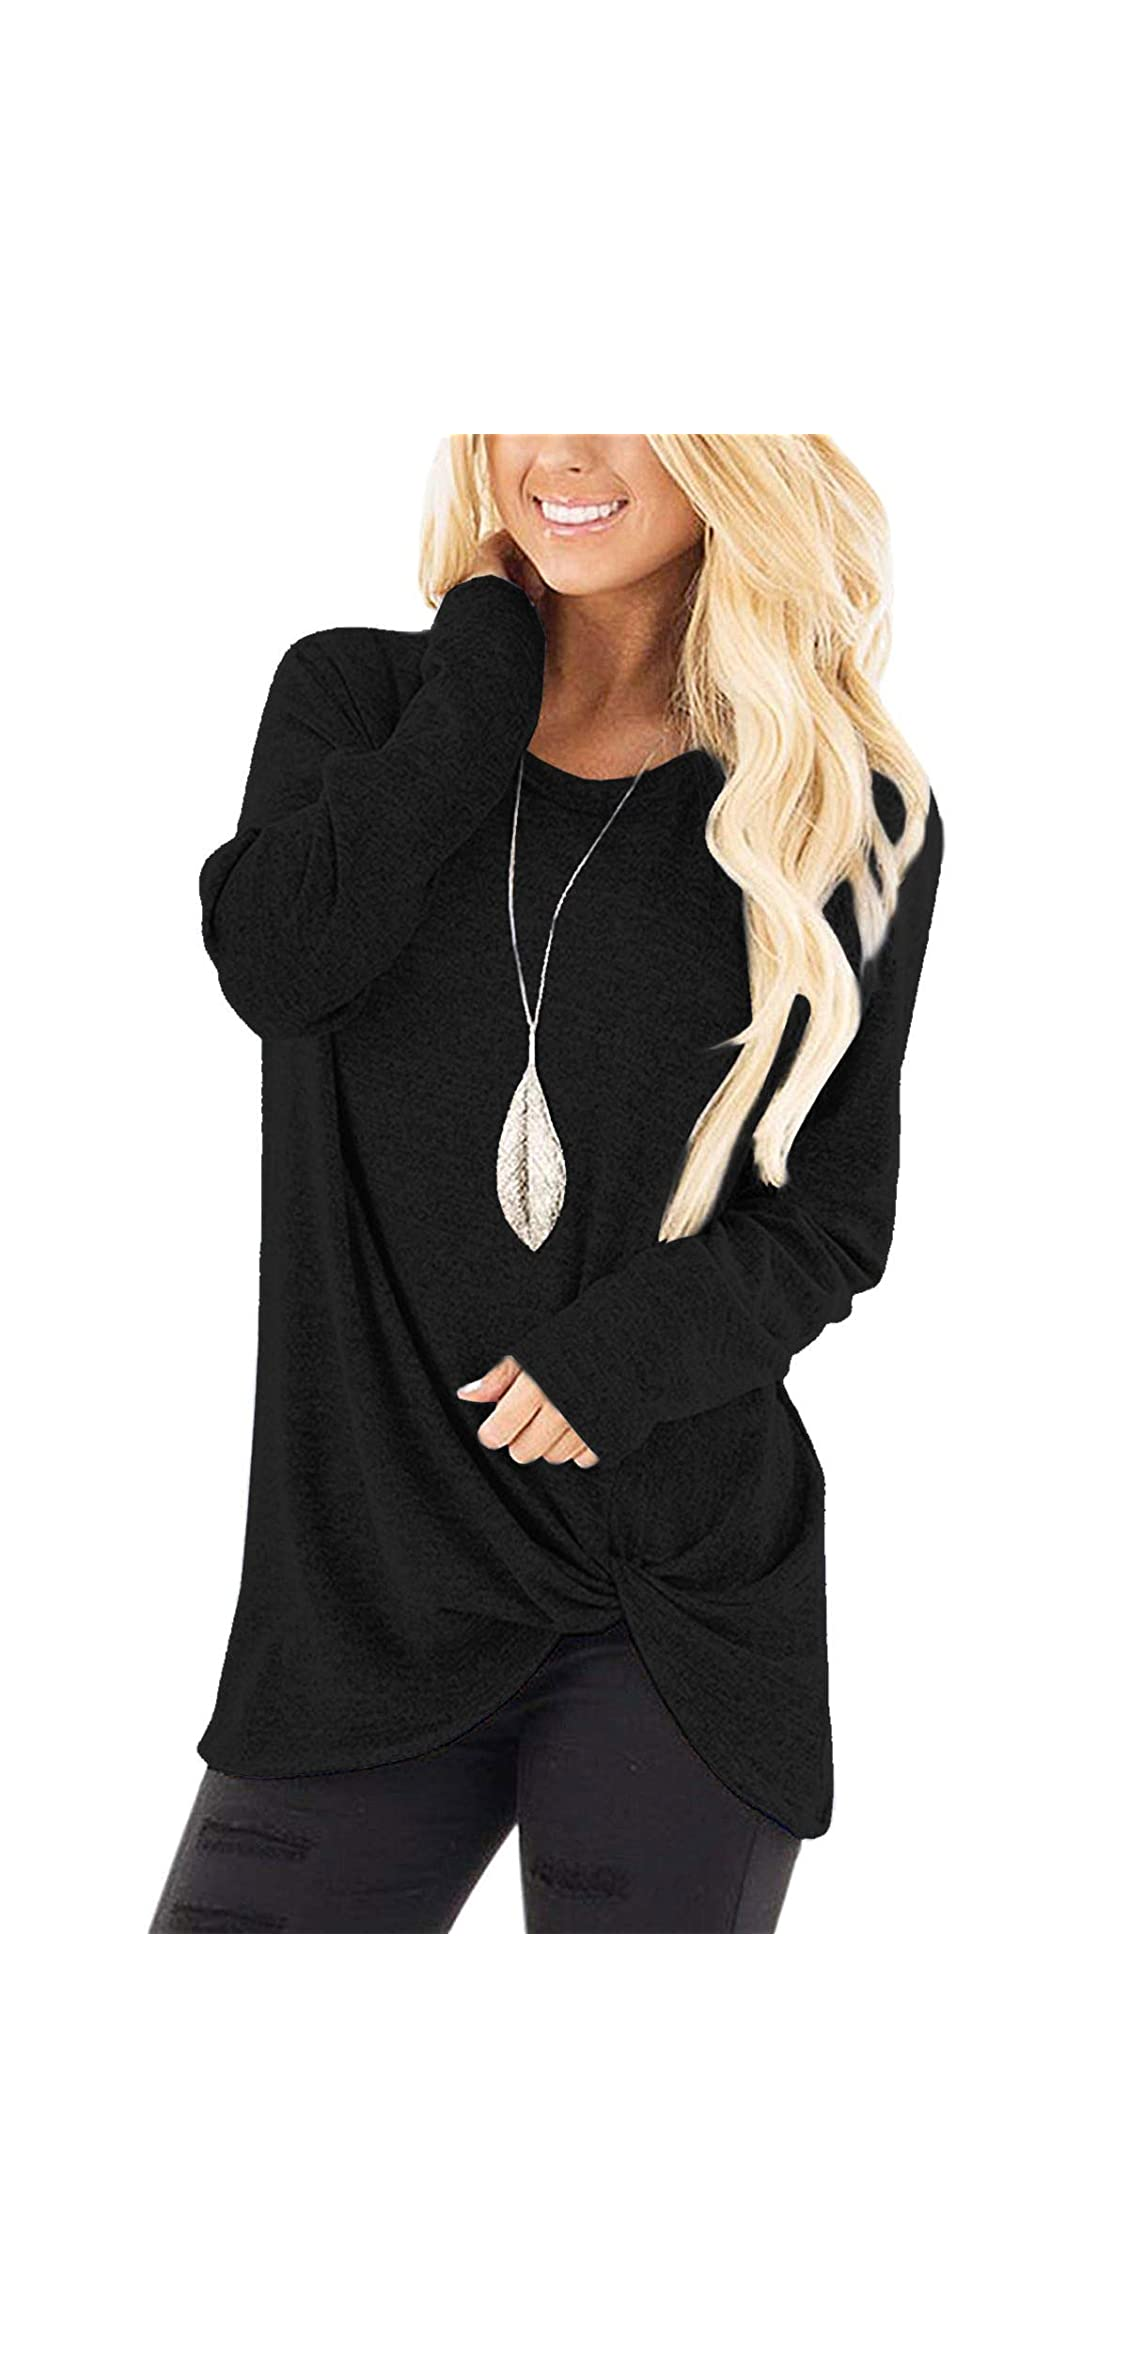 Women's Soft Casual Tops Shirts Fashion Twist Knotted T